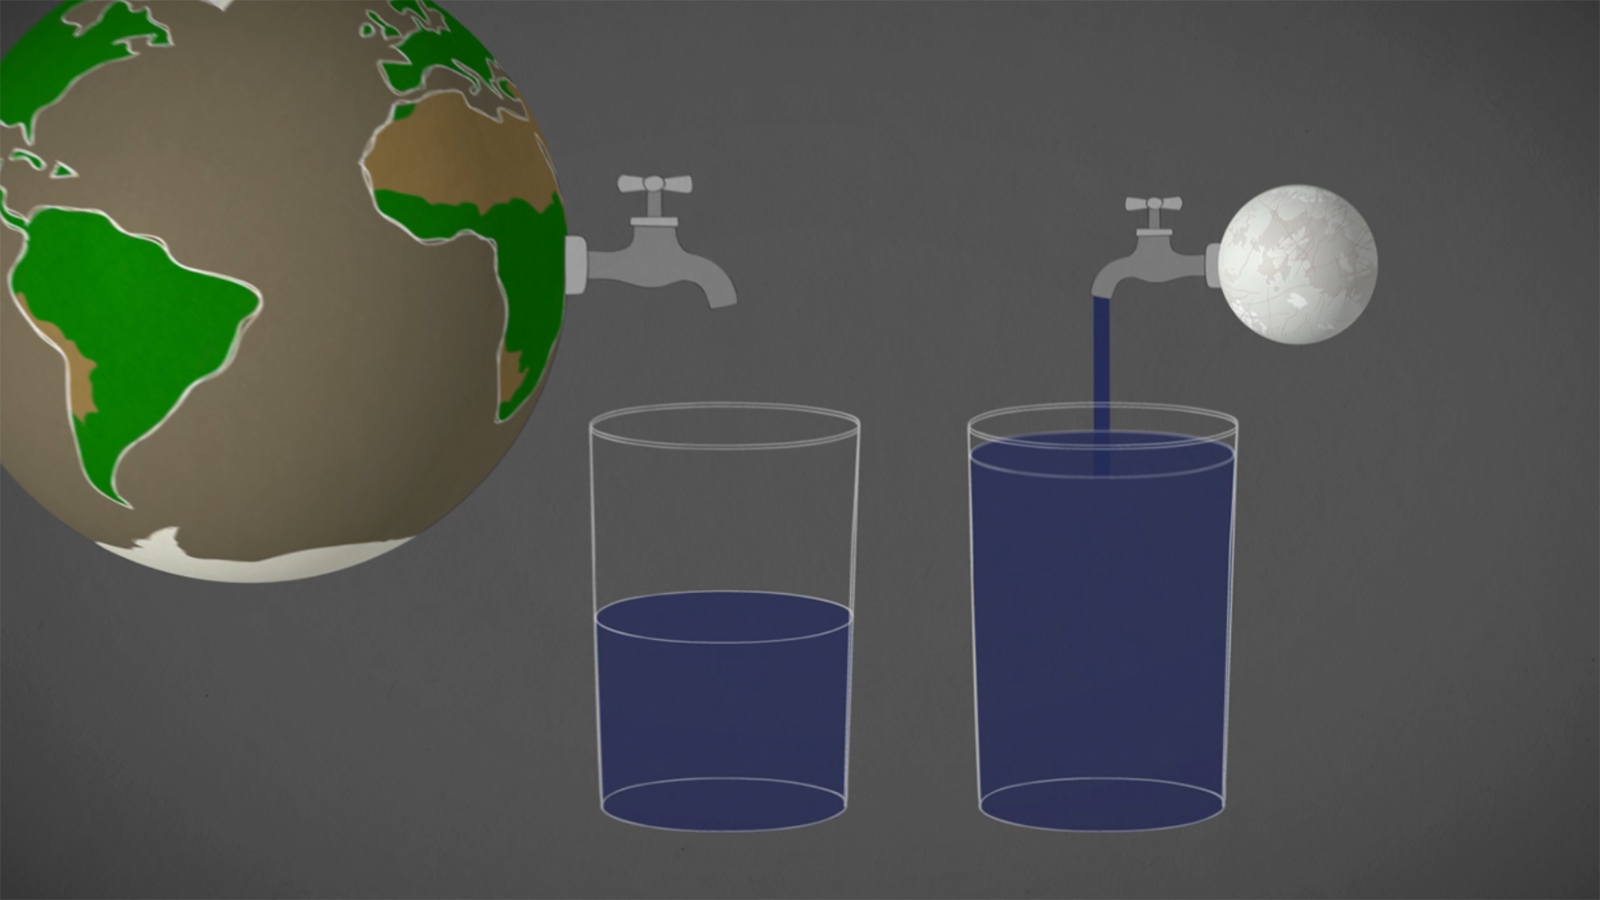 slide 3 - Color cartoon comparing water on Earth to water on Europa